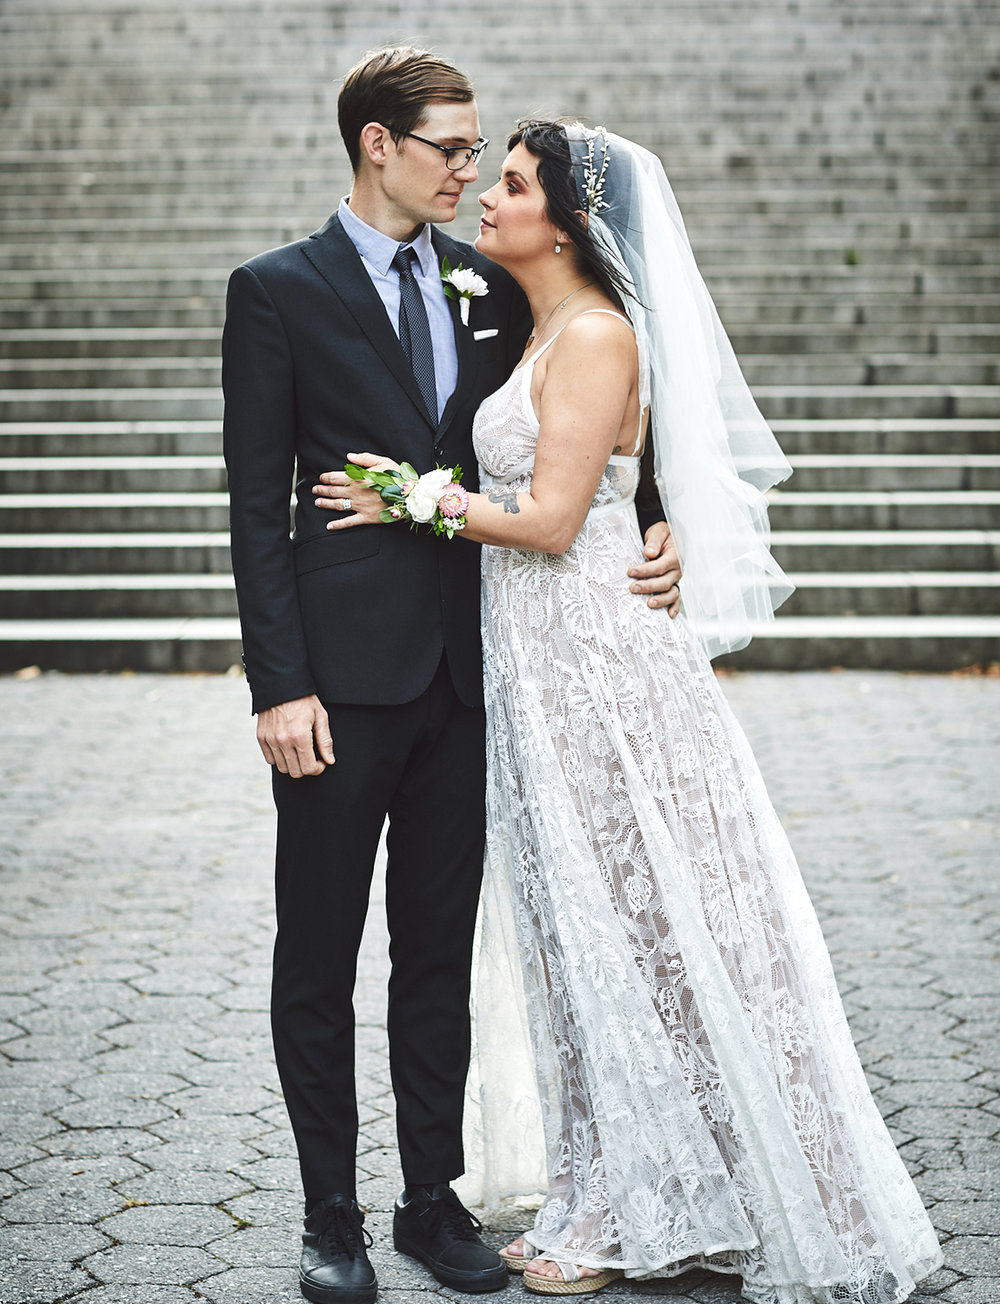 170920_FortGreeneWeddingPhotography_BrooklynWeddingPhotographer_By_BriJohnsonWeddings_0022.jpg